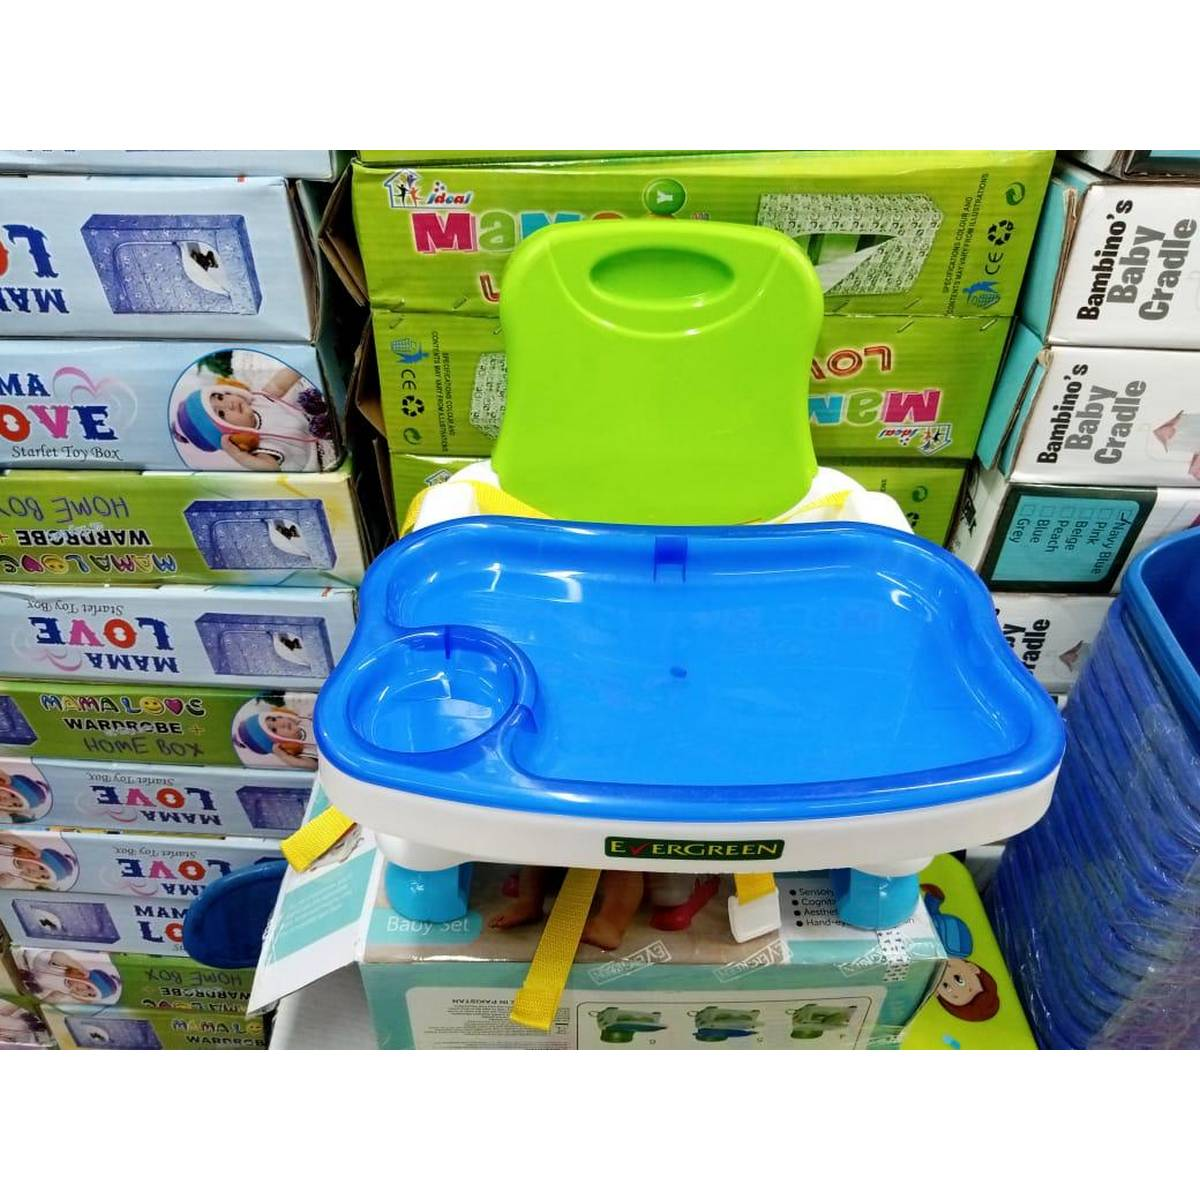 baby dining chair - Booster Seat High Chair With Removable Foldable Toy Tray 3 Point Safety Harness